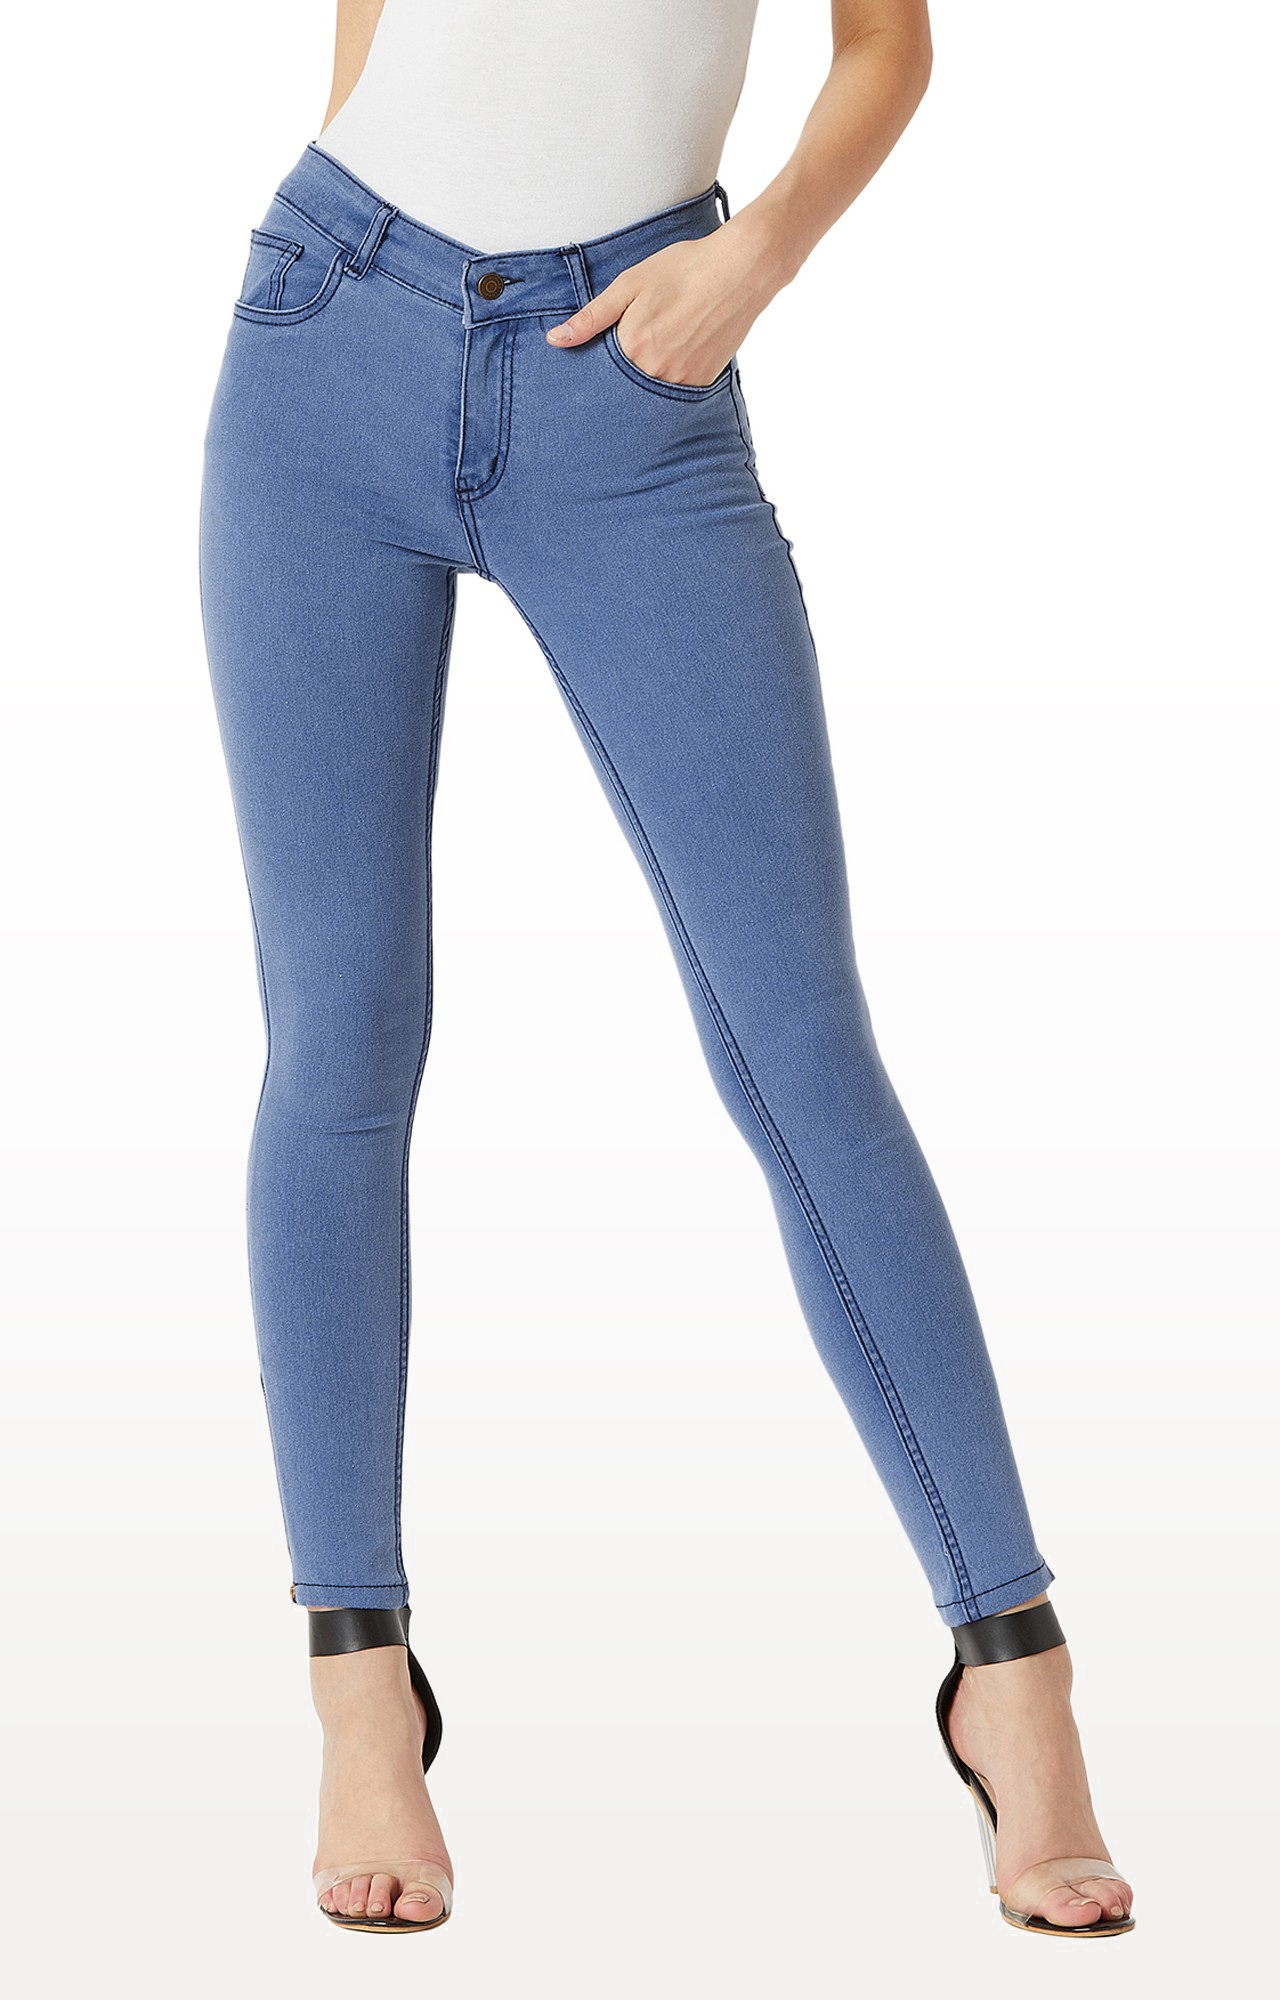 MISS CHASE   Light Blue Solid Mid Rise Zipper Detailing Clean Look Stretchable Jeans